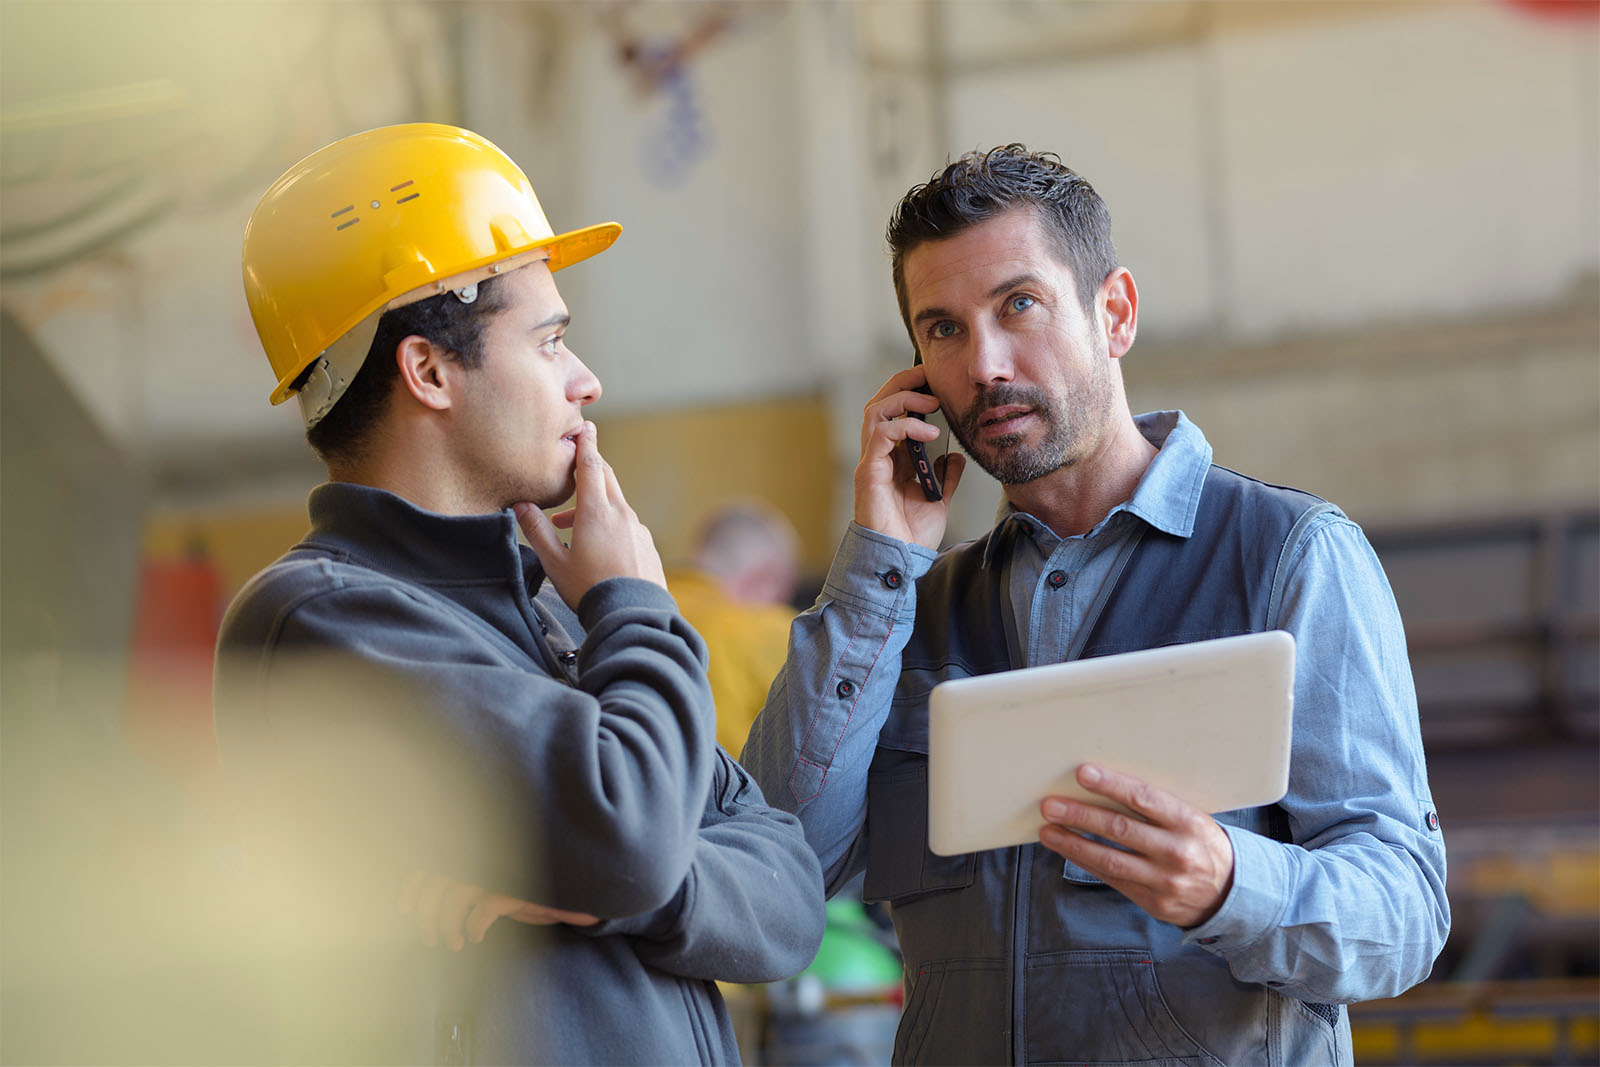 Male client conducting a call alongside an engineer in a hard hat